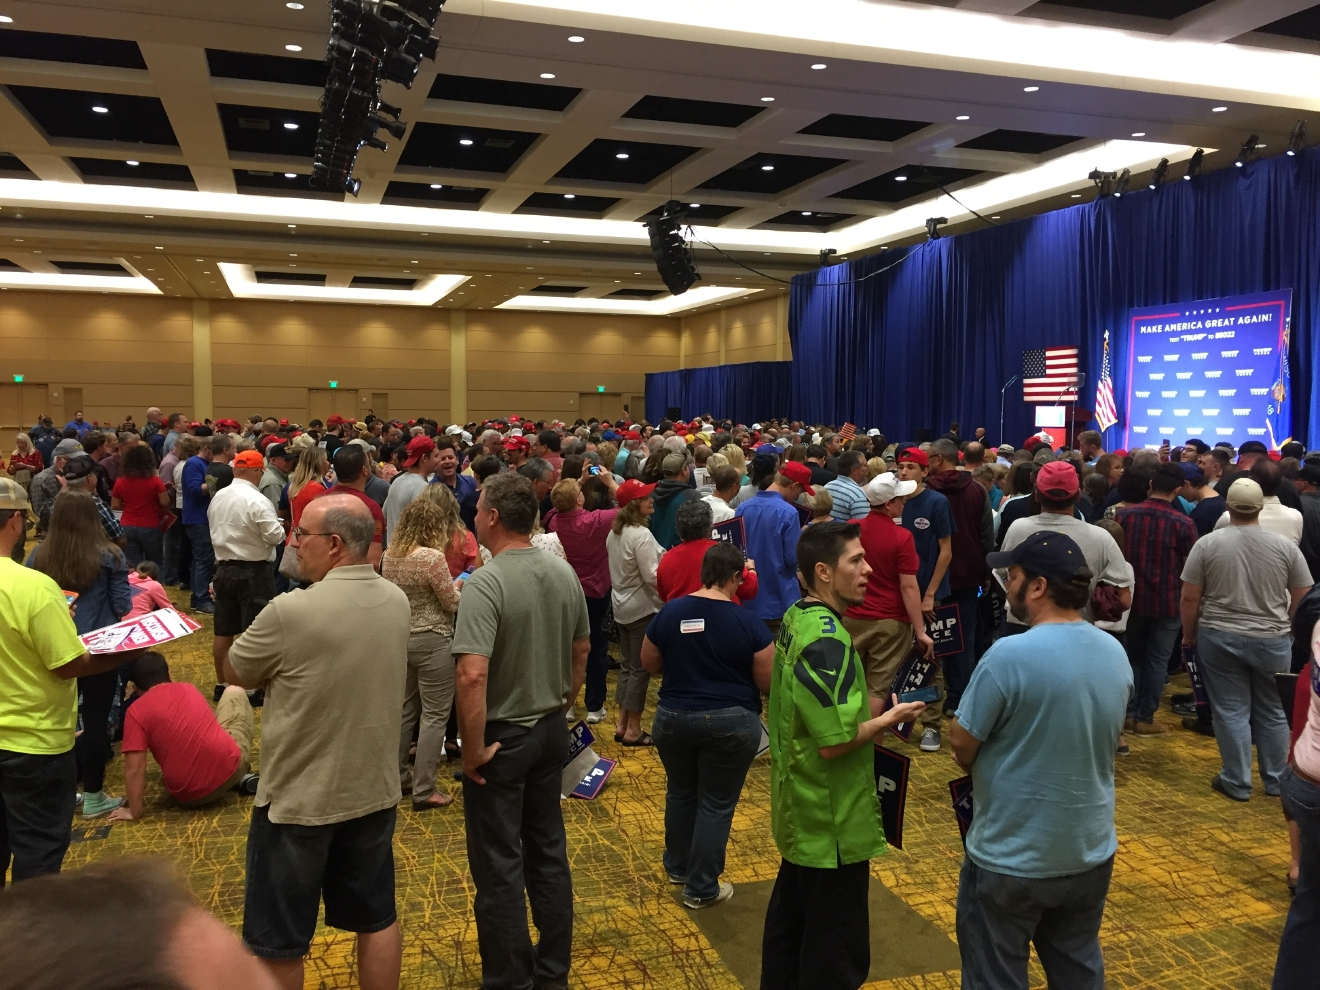 People gather inside the KI Convention Center in Green Bay, Wisc. ahead of a Donald Trump rally, Monday, Oct. 17, 2016. (WLUK/Andrew LaCombe)